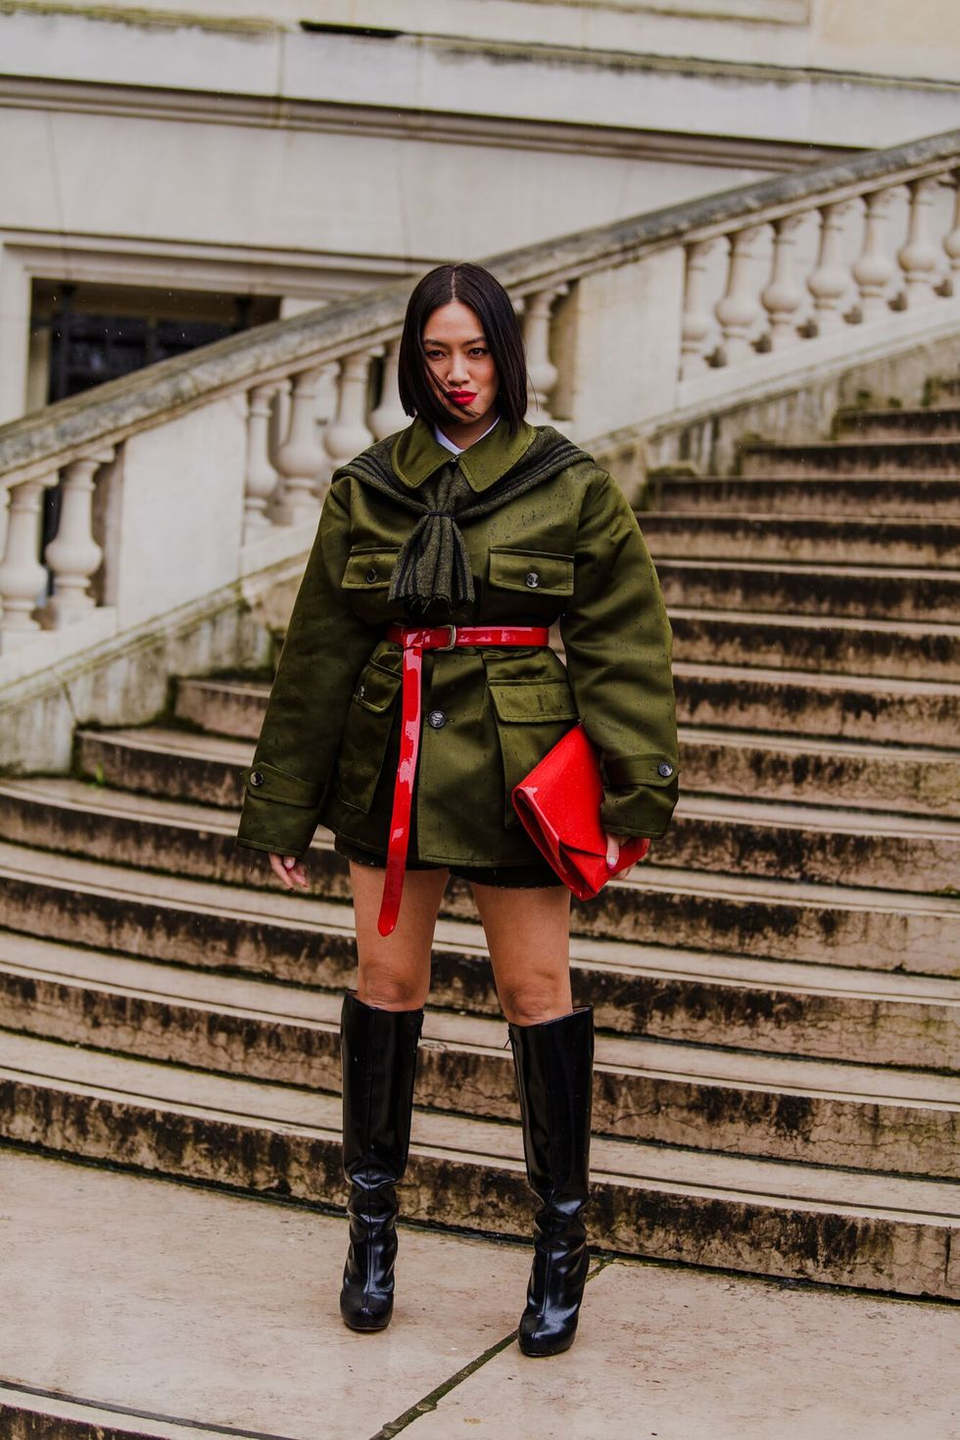 <p>With large pockets and oversized silhouettes, these military-inspired jackets are going to be everywhere this fall. Accessorize with pops of color and knee-high boots.</p>